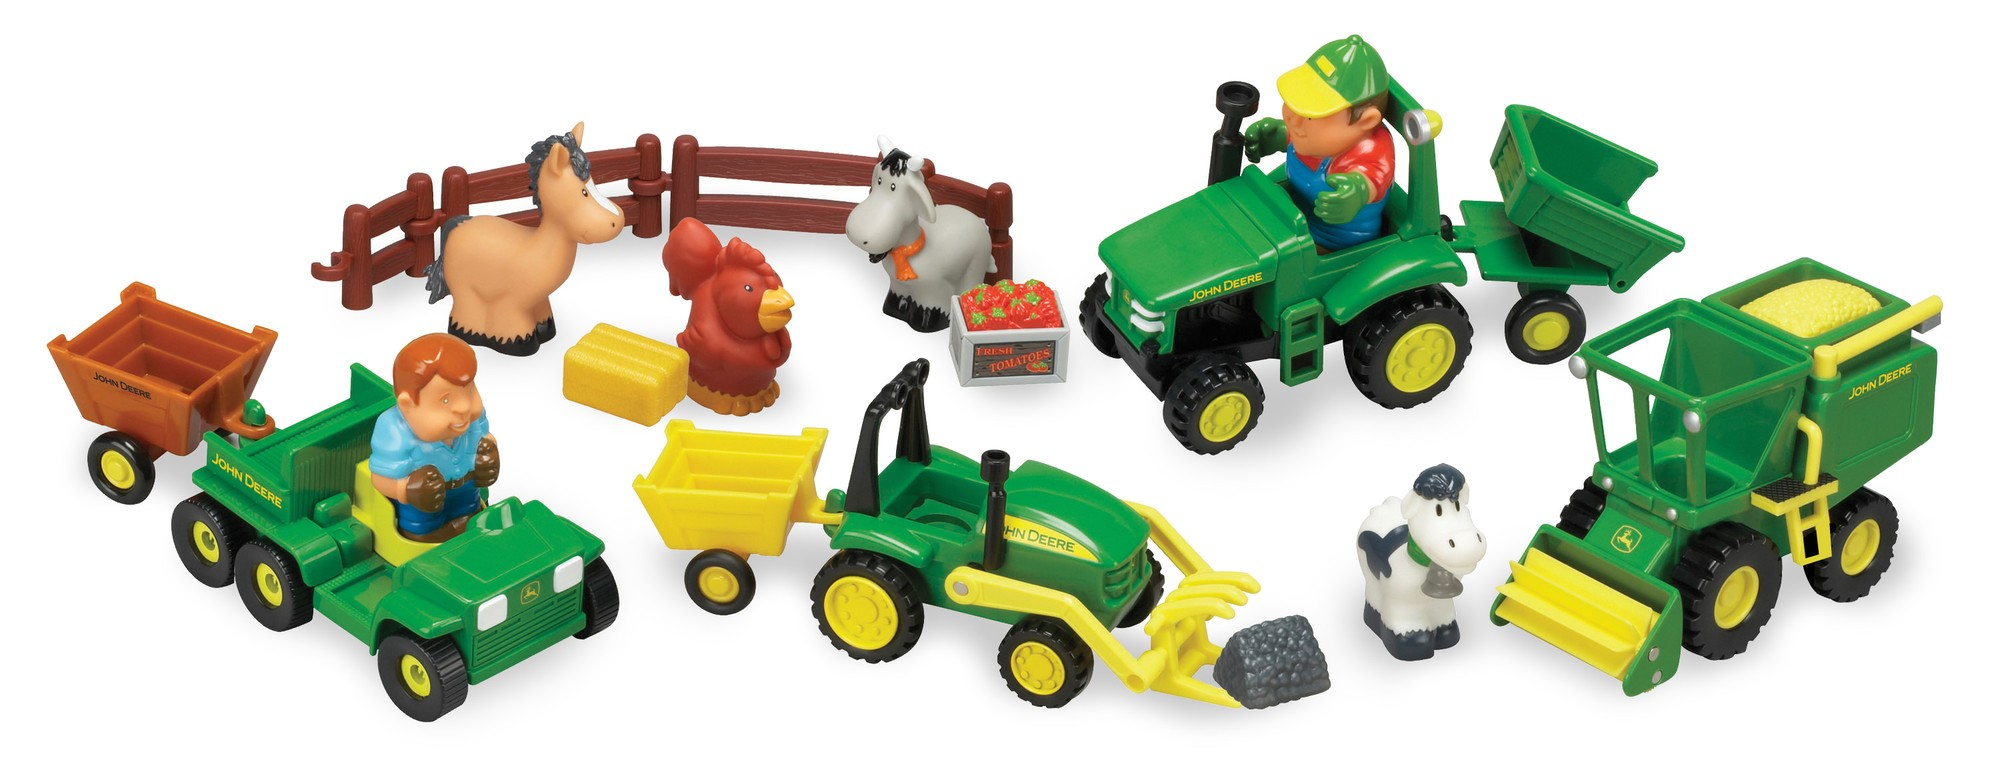 John Deere Fun On The Farm Playset by TOMY